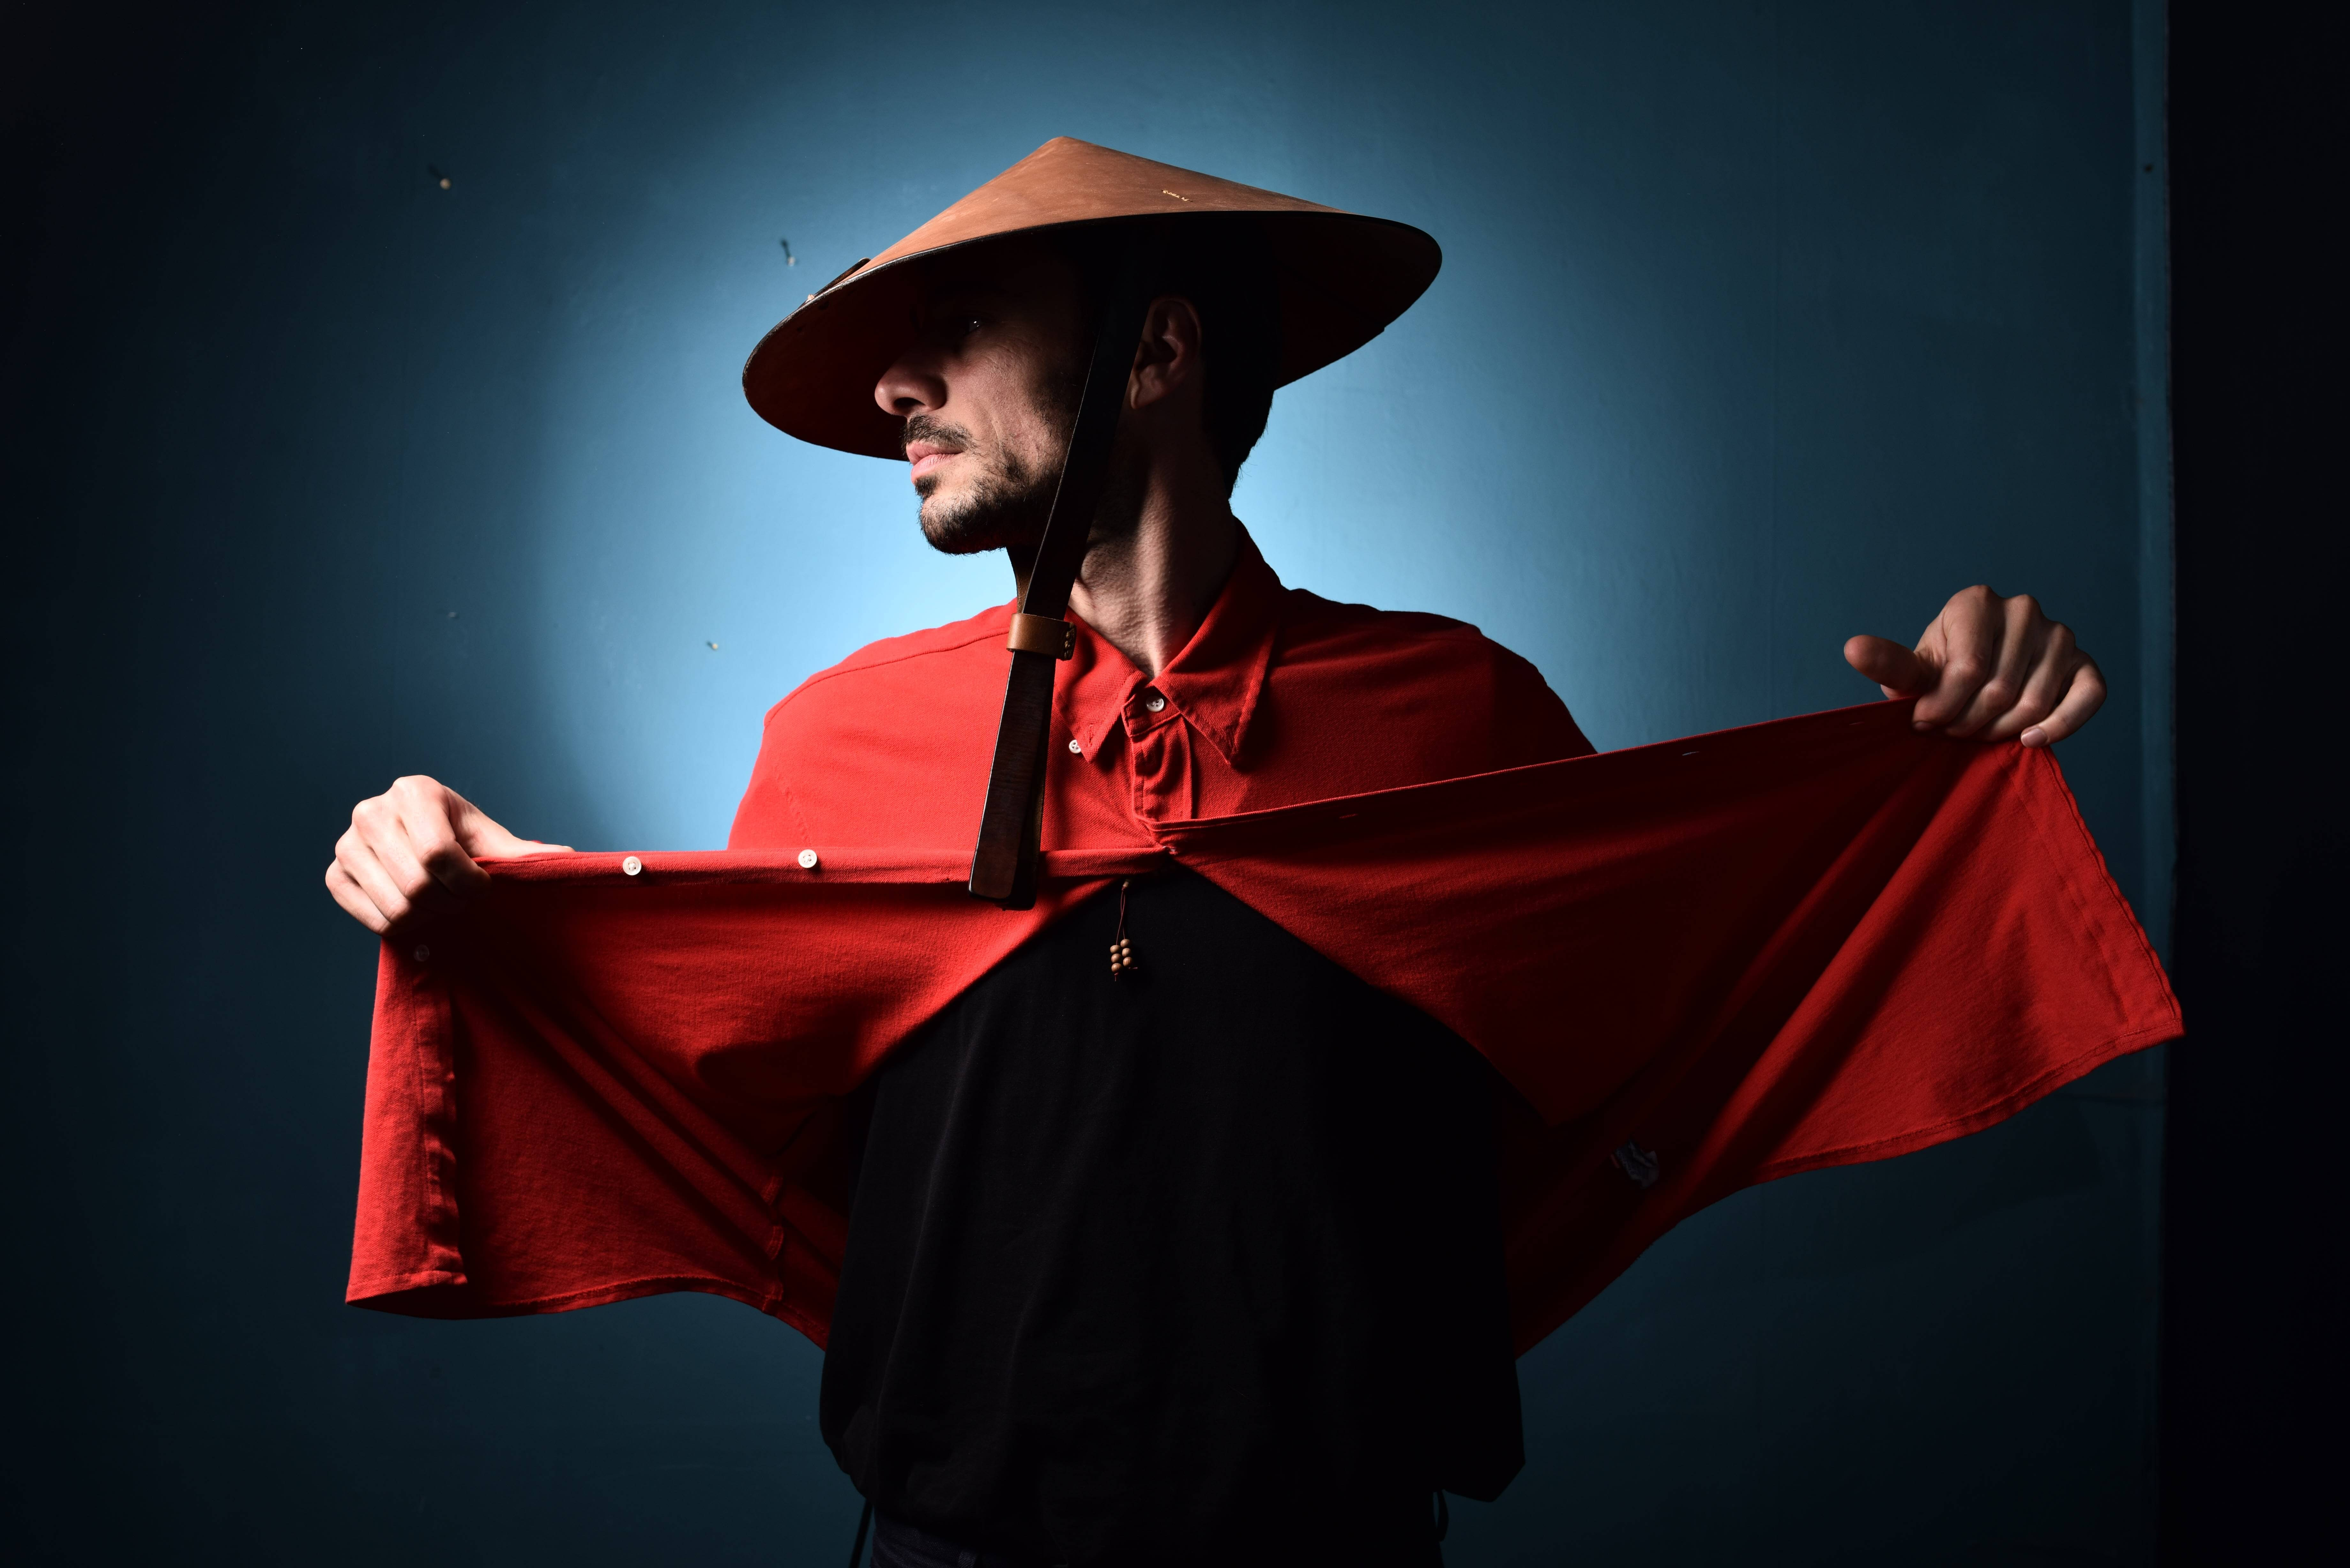 A man is modeling in an Asian conical hat and a red shirt in Yerevan.